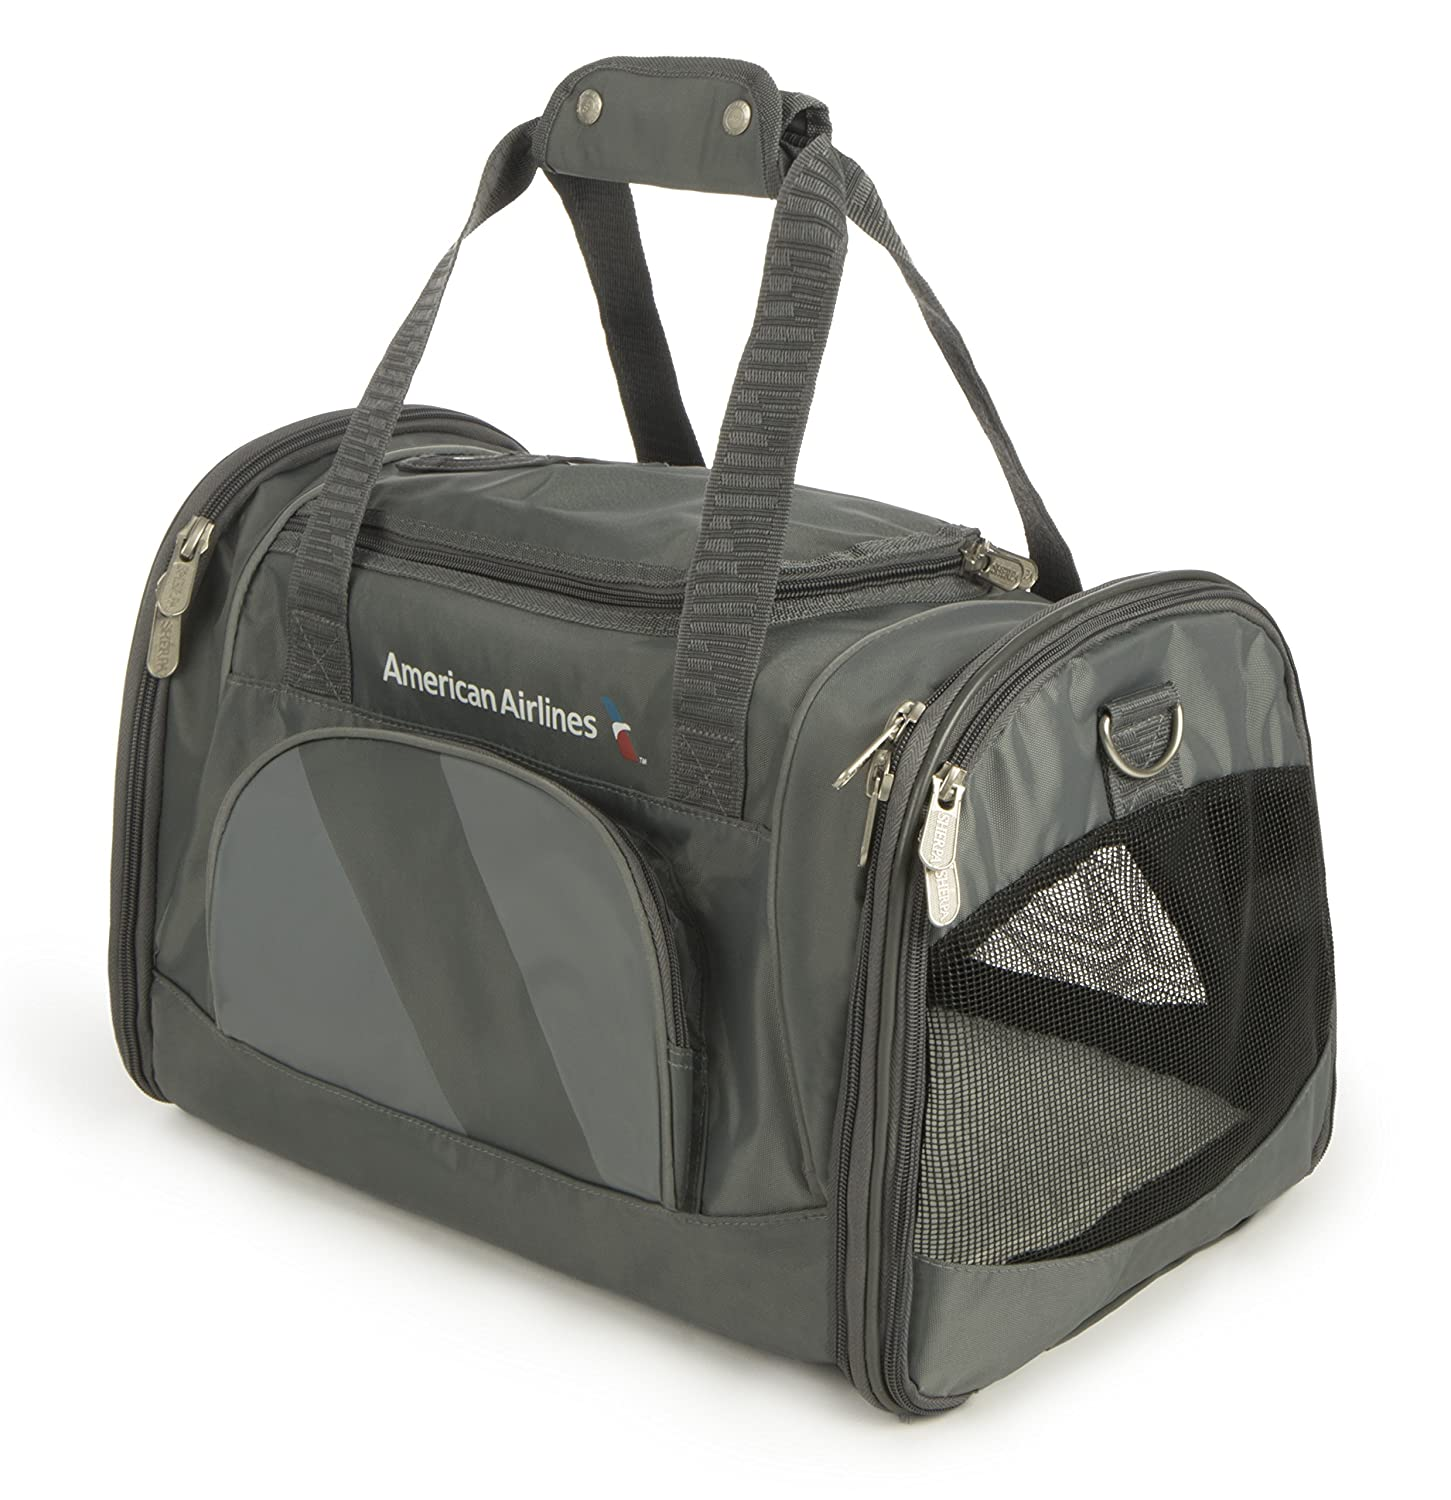 Sherpa American Airlines Duffel Airline Approved Pet Carrier, Medium, Charcoal